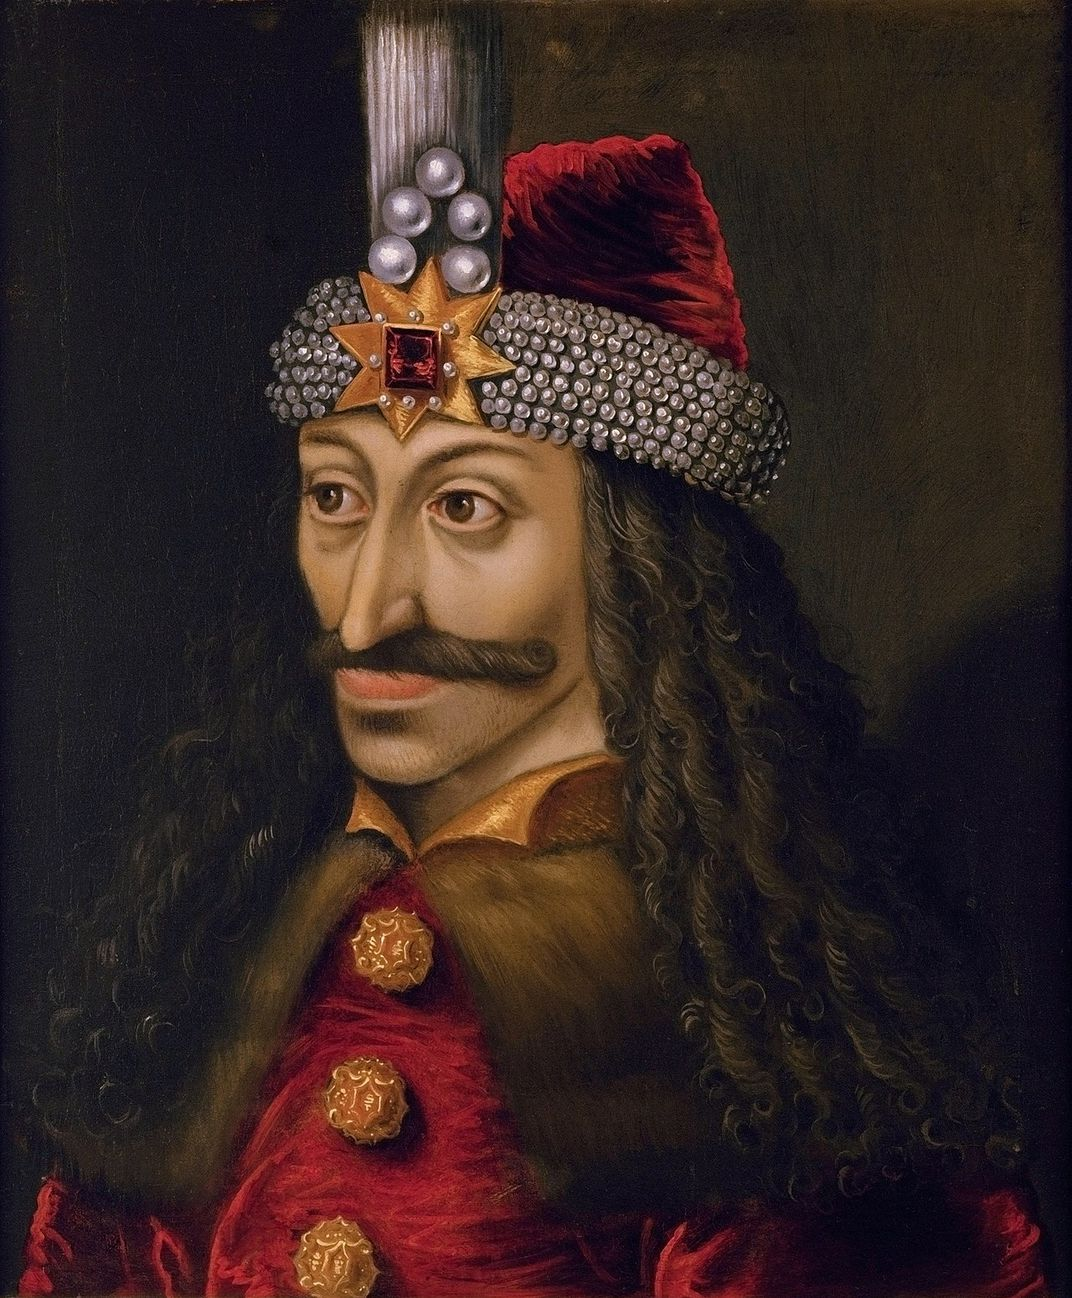 Painting of Vlad the Impaler